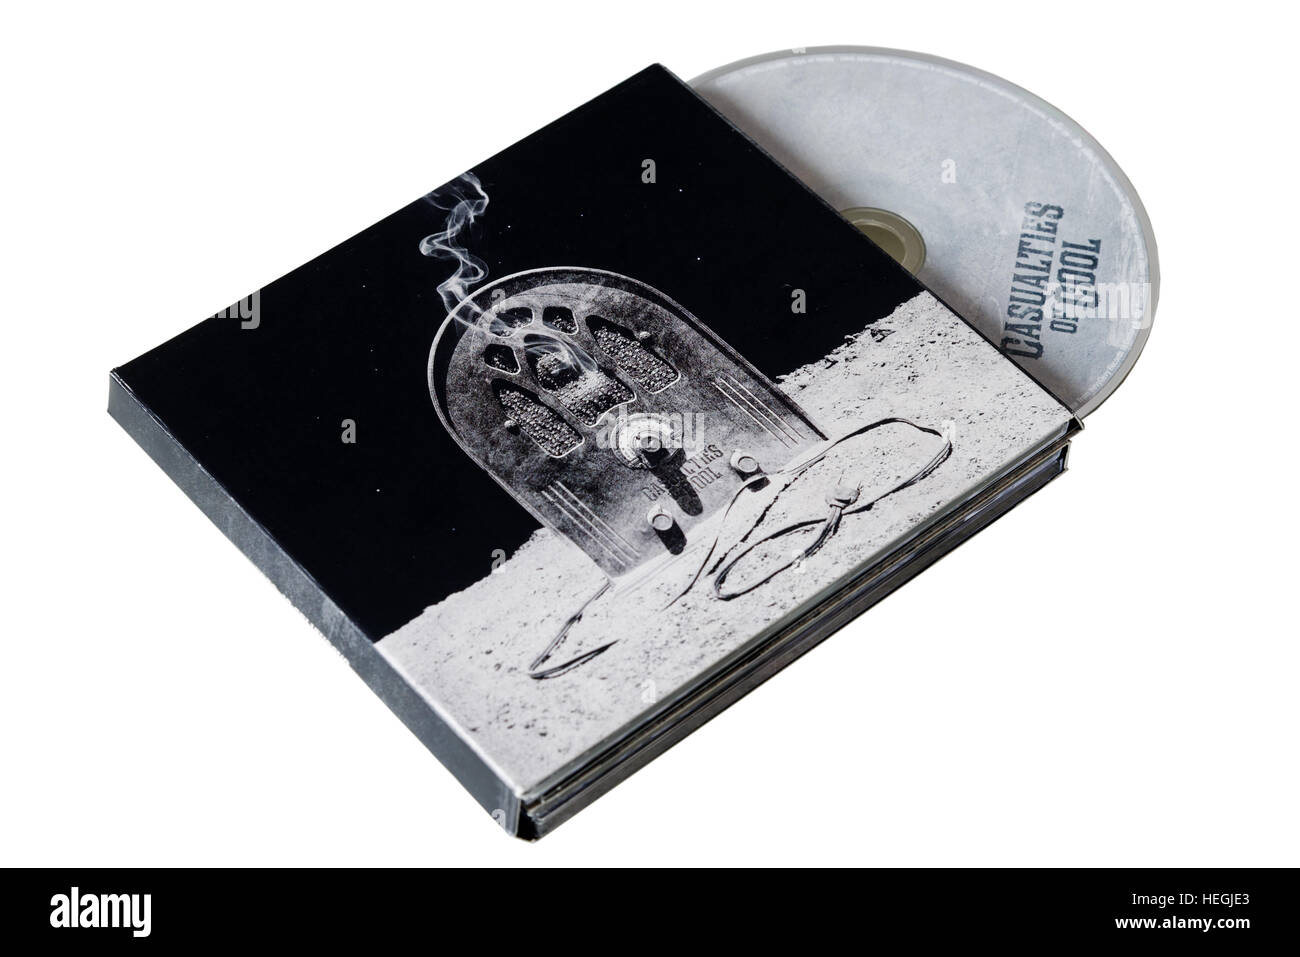 Devin Townsend Casualties of Cool CD - Stock Image